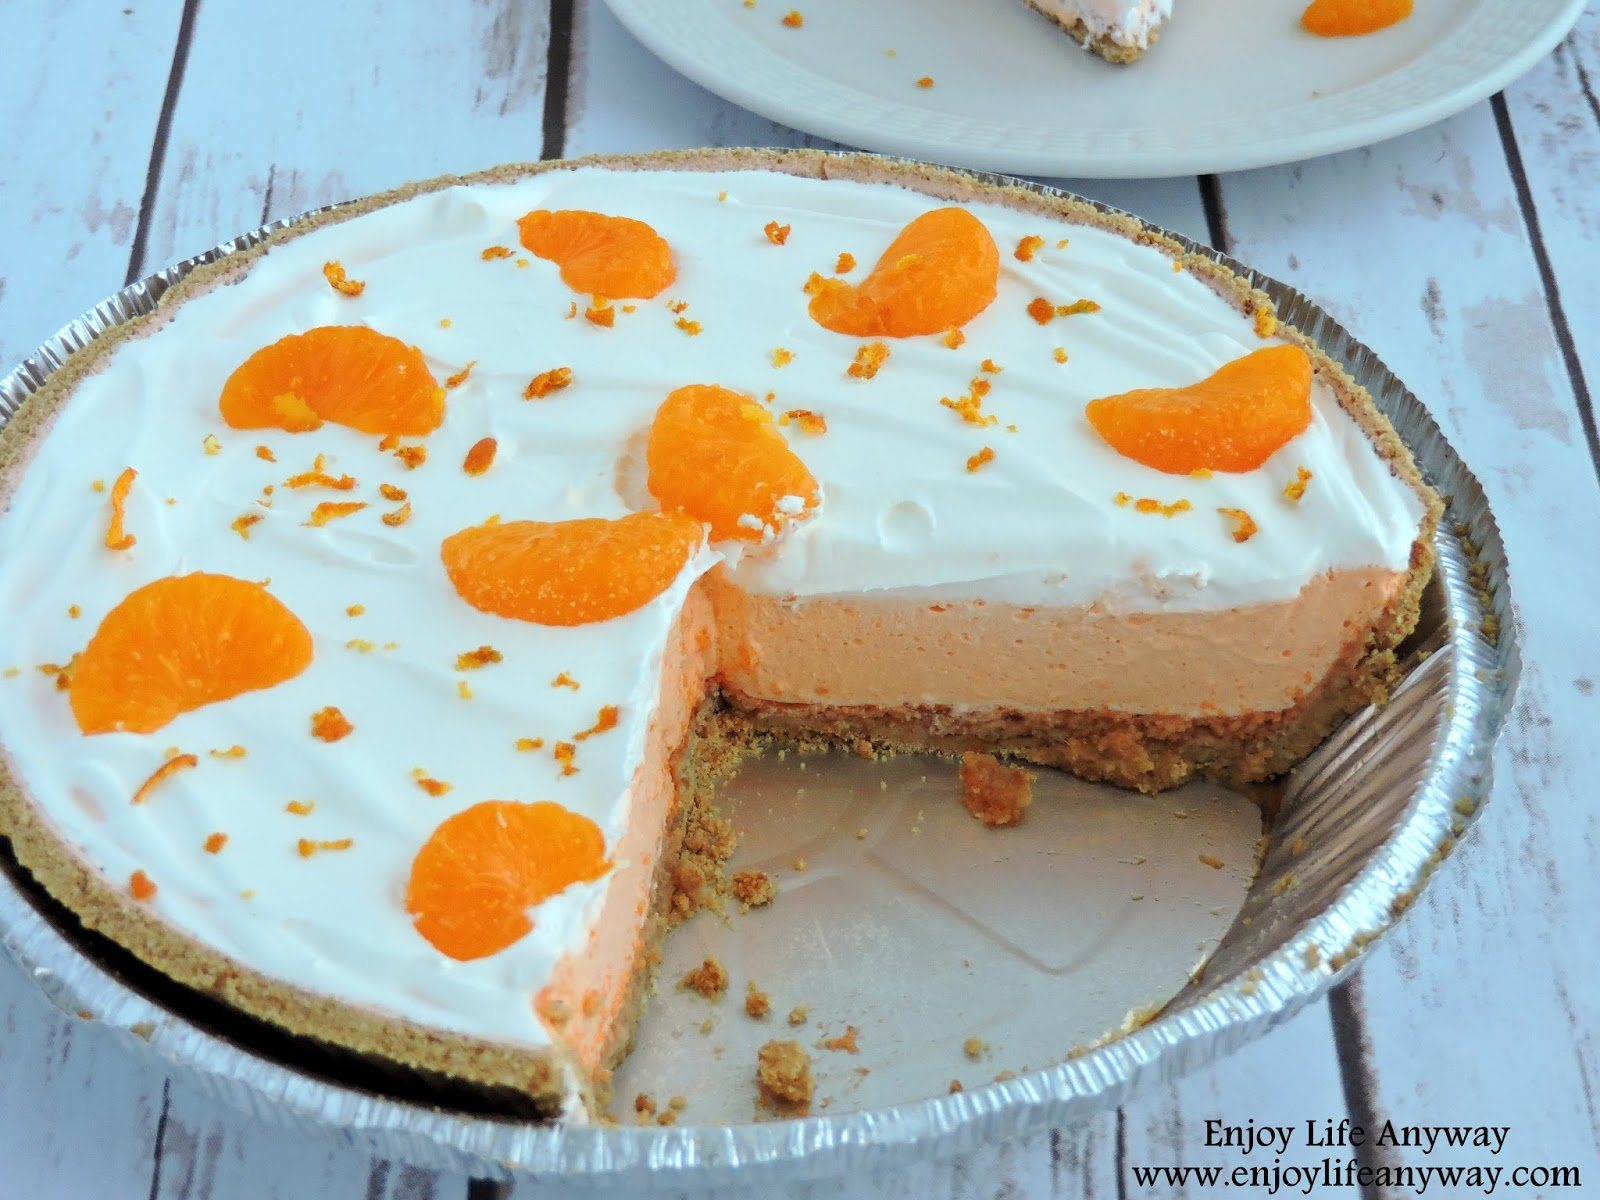 Enjoy Life Anyway: Easy Dreamy Creamsicle Pie